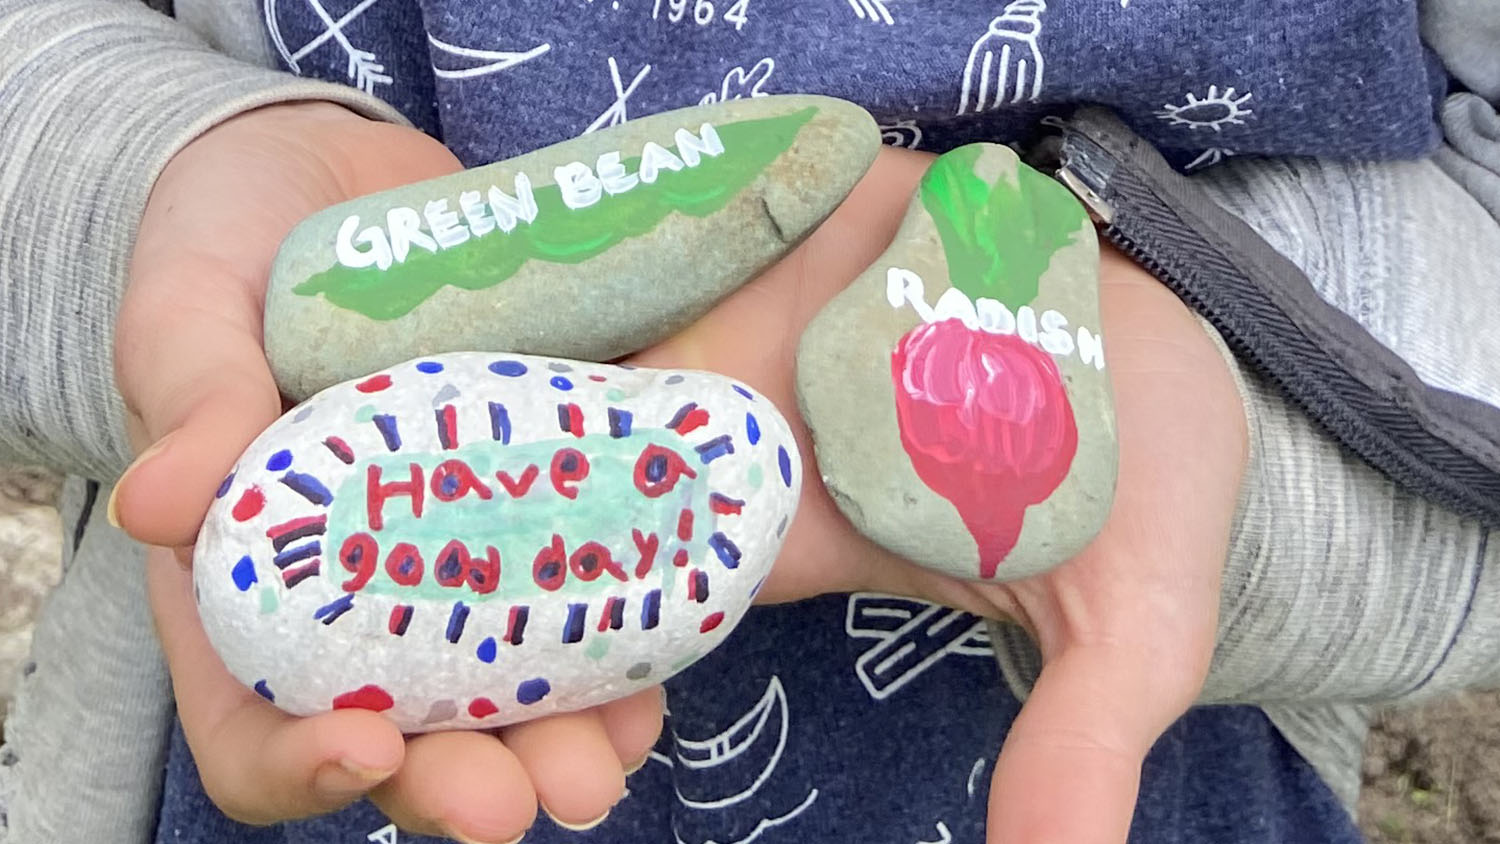 """Two hands holding rocks with drawings labeled """"green bean,"""" """"radish,"""" and """"Have a good day!"""""""